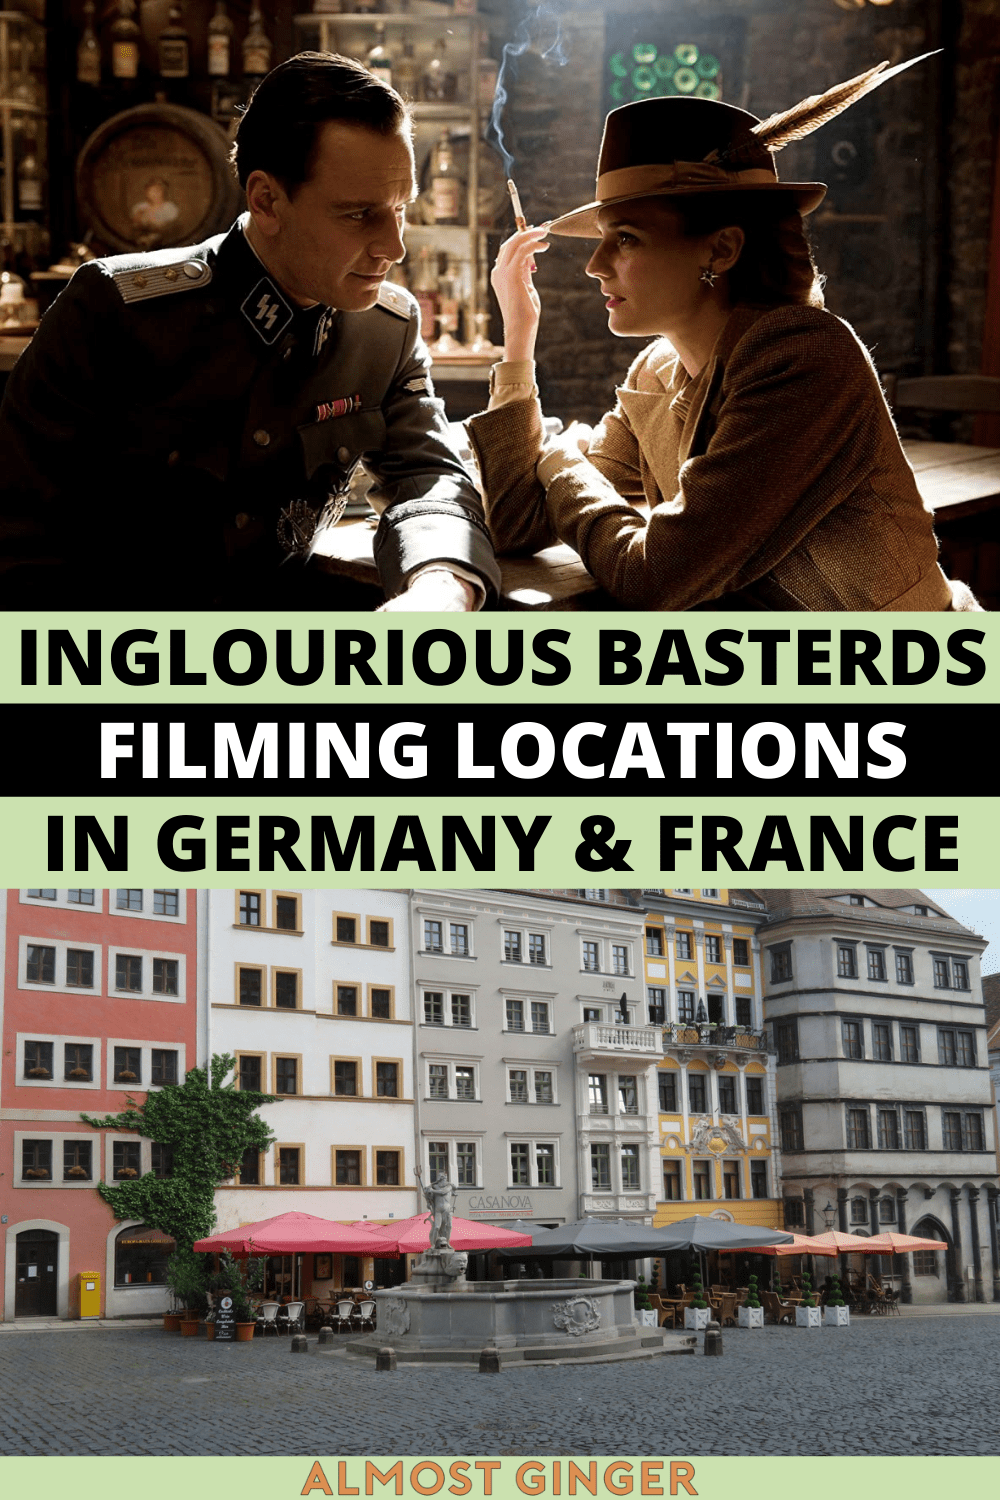 Inglourious Basterds Filming Locations in Germany & France | almostginger.com